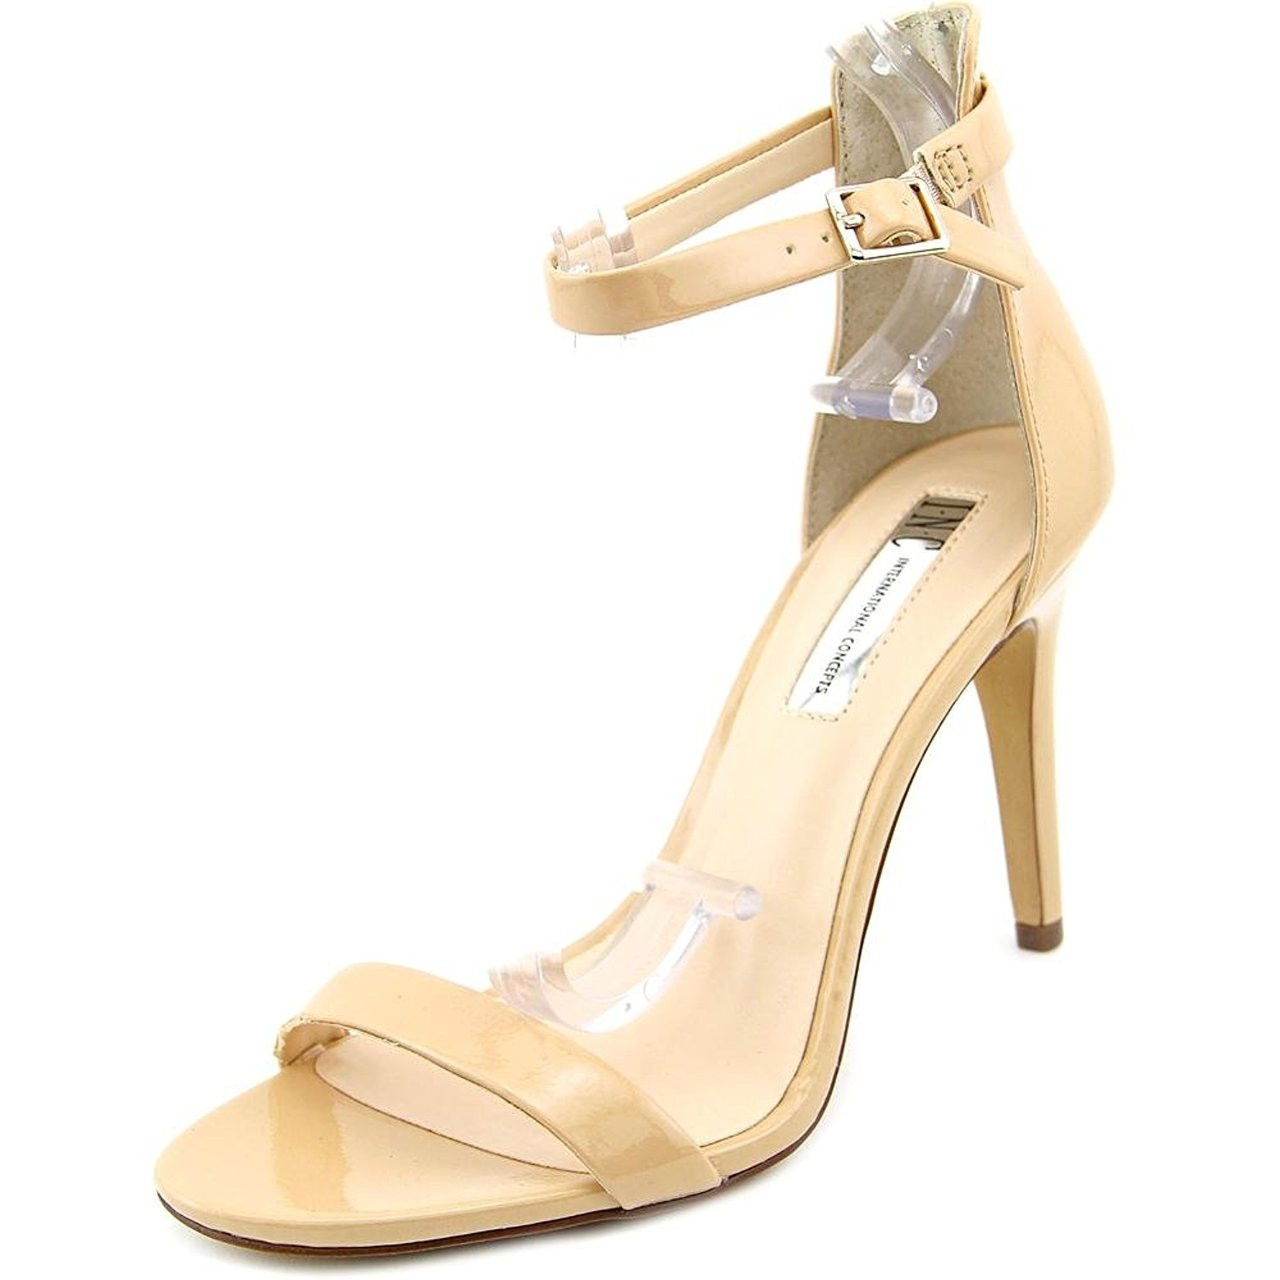 f6c839d82bc ... INC International Concepts Womens Roriee Open Toe Ankle Strap  Sandals~pp-06f823db